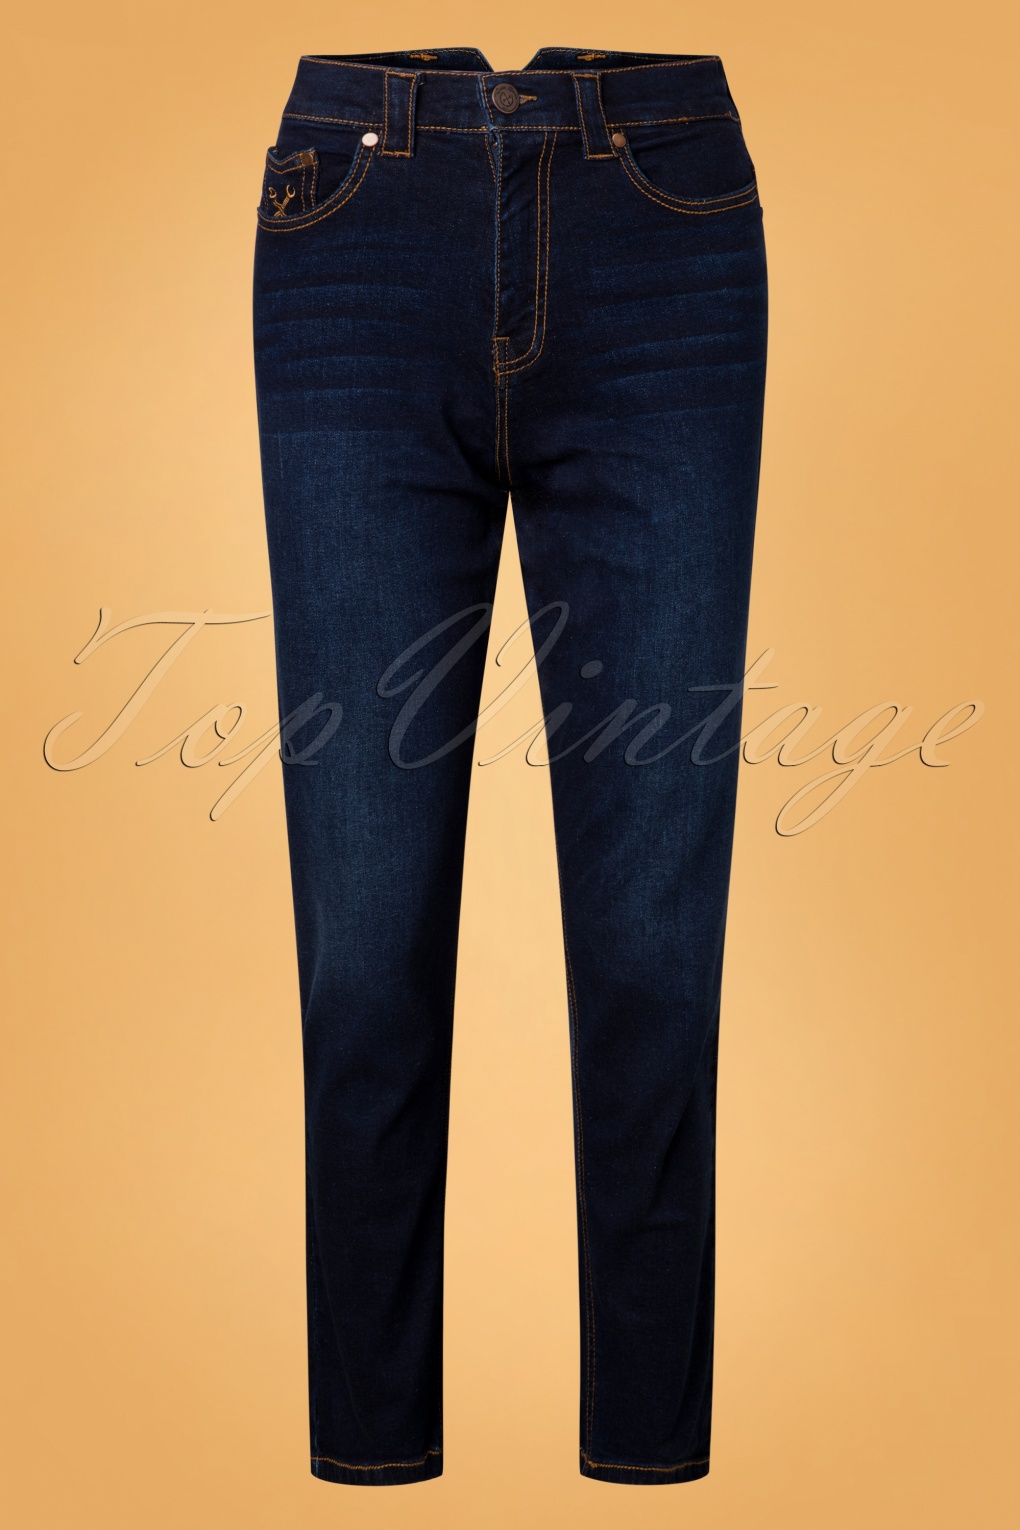 Vintage High Waisted Trousers, Sailor Pants, Jeans 50s Melly Jeans in Blue £82.52 AT vintagedancer.com